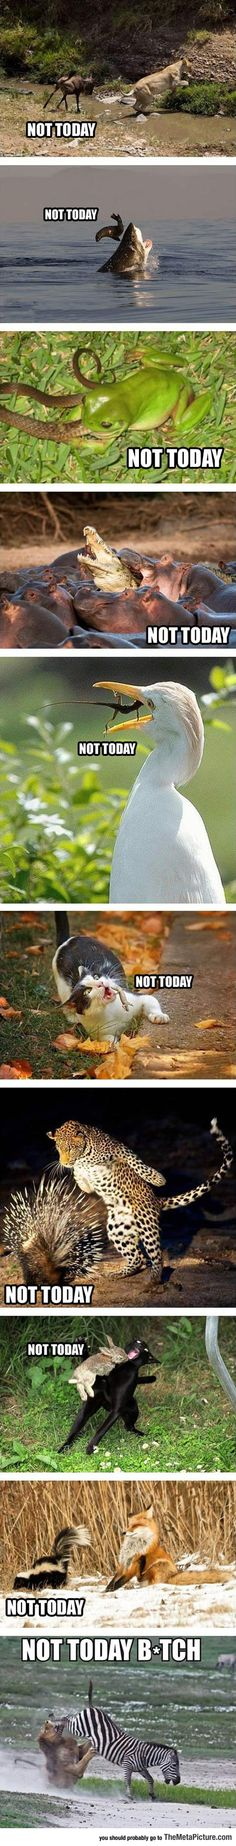 Some Animals That Said 'Not Today'